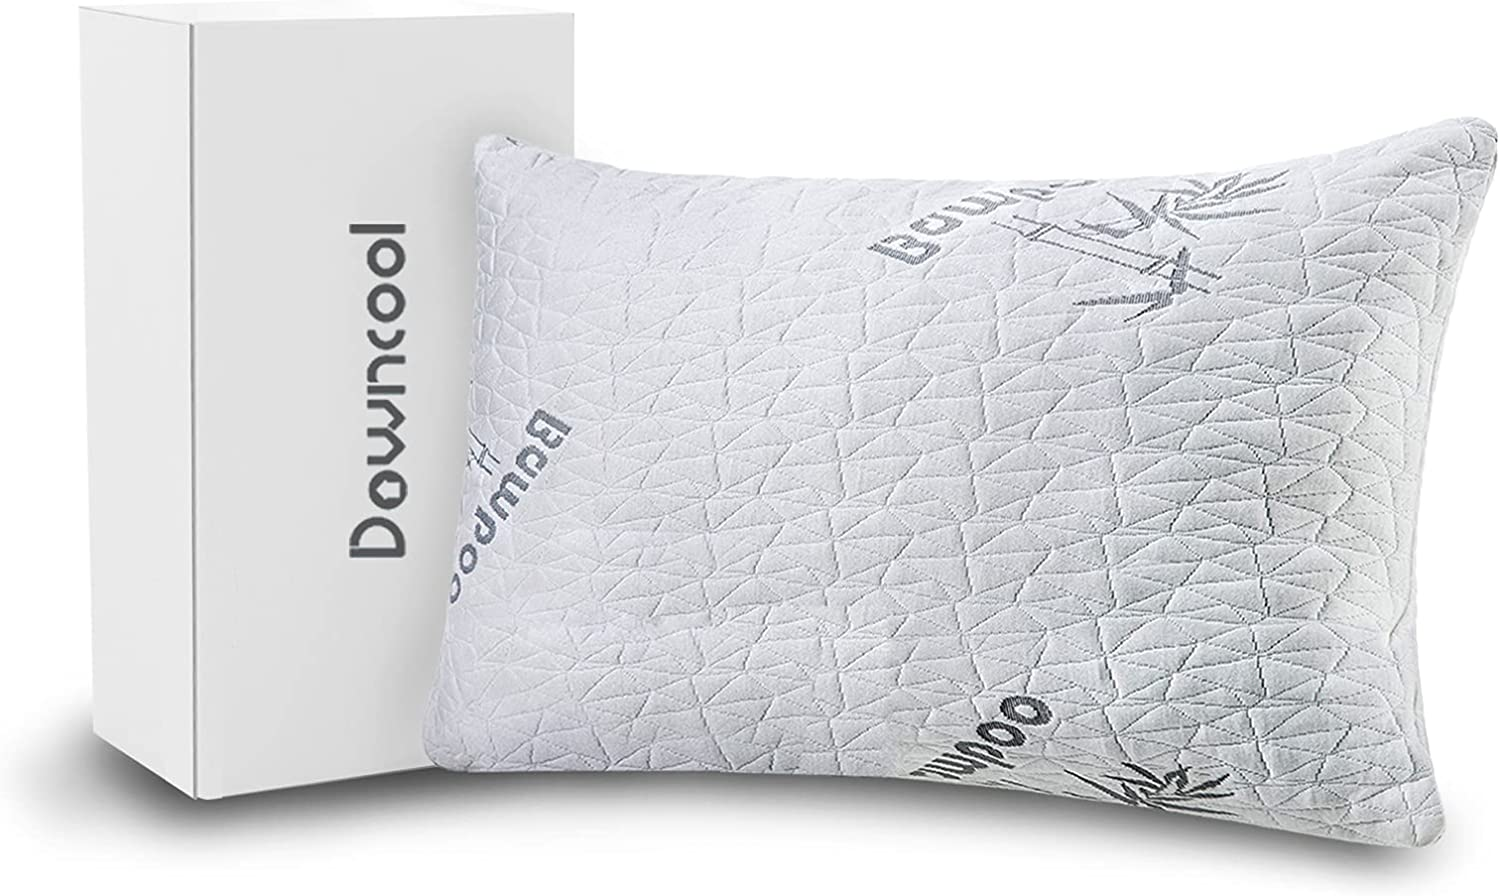 DOWNCOOL Premium Pillow for Sleeping - 1 Pack Cooling Shredded Memory Foam Bed Pillow with Washable Bamboo Cover - for Side Neck Stomach Sleepers and Shoulder Pain (Queen)